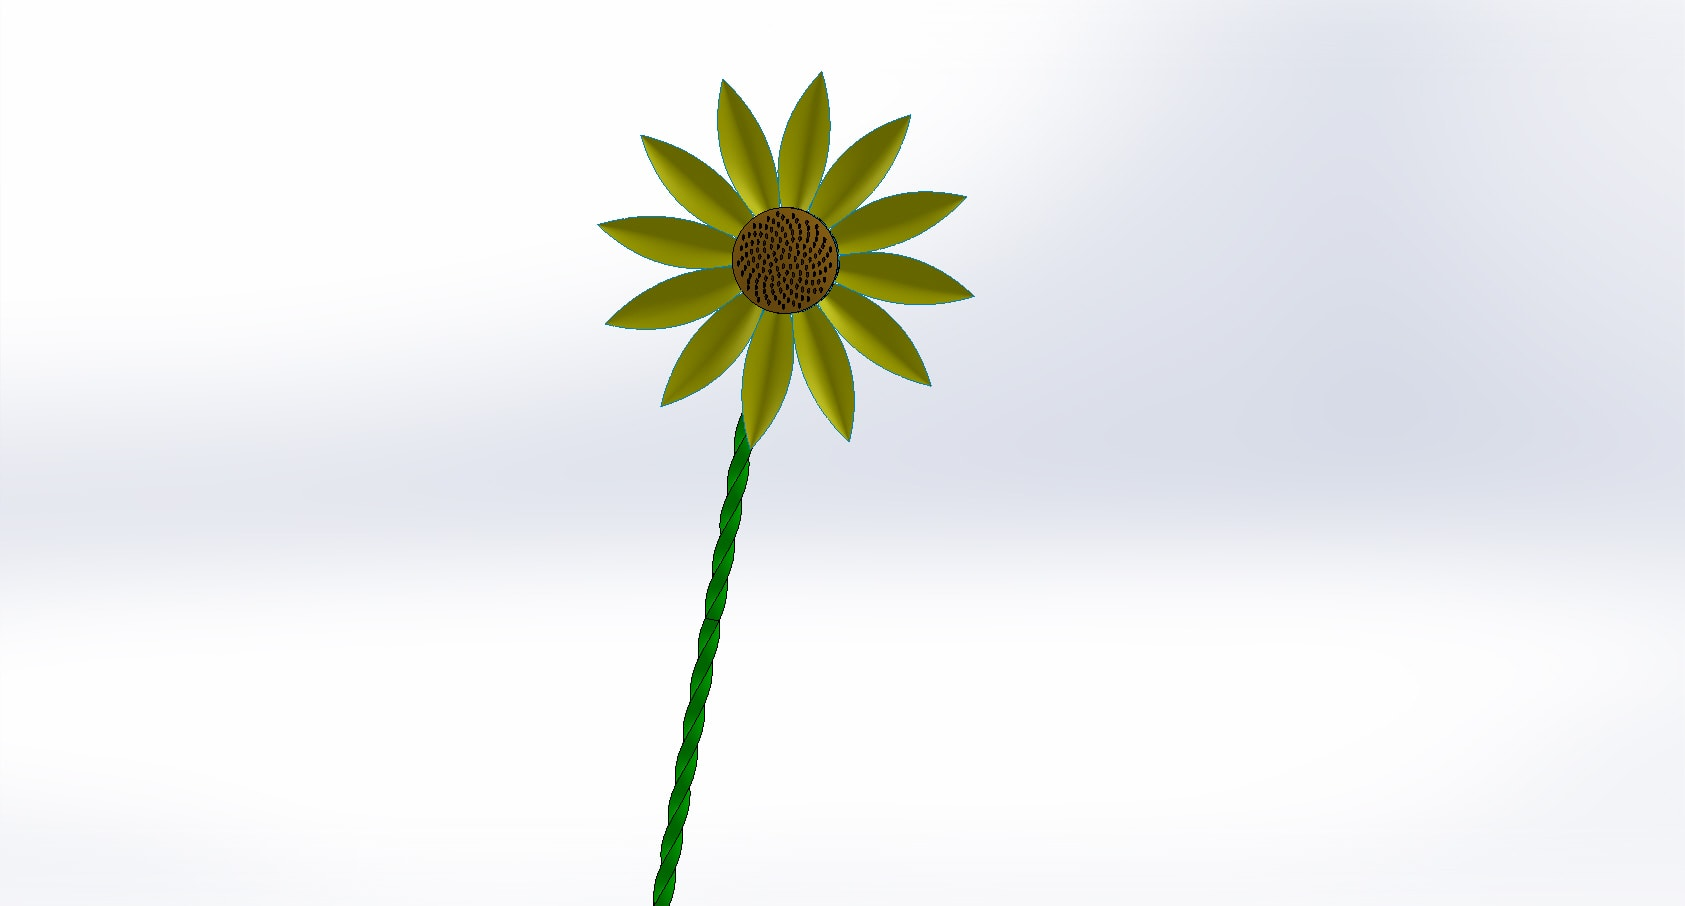 C:\Users\mspeer\AppData\Local\Microsoft\Windows\INetCacheContent.Word\stem with sunflower.jpg